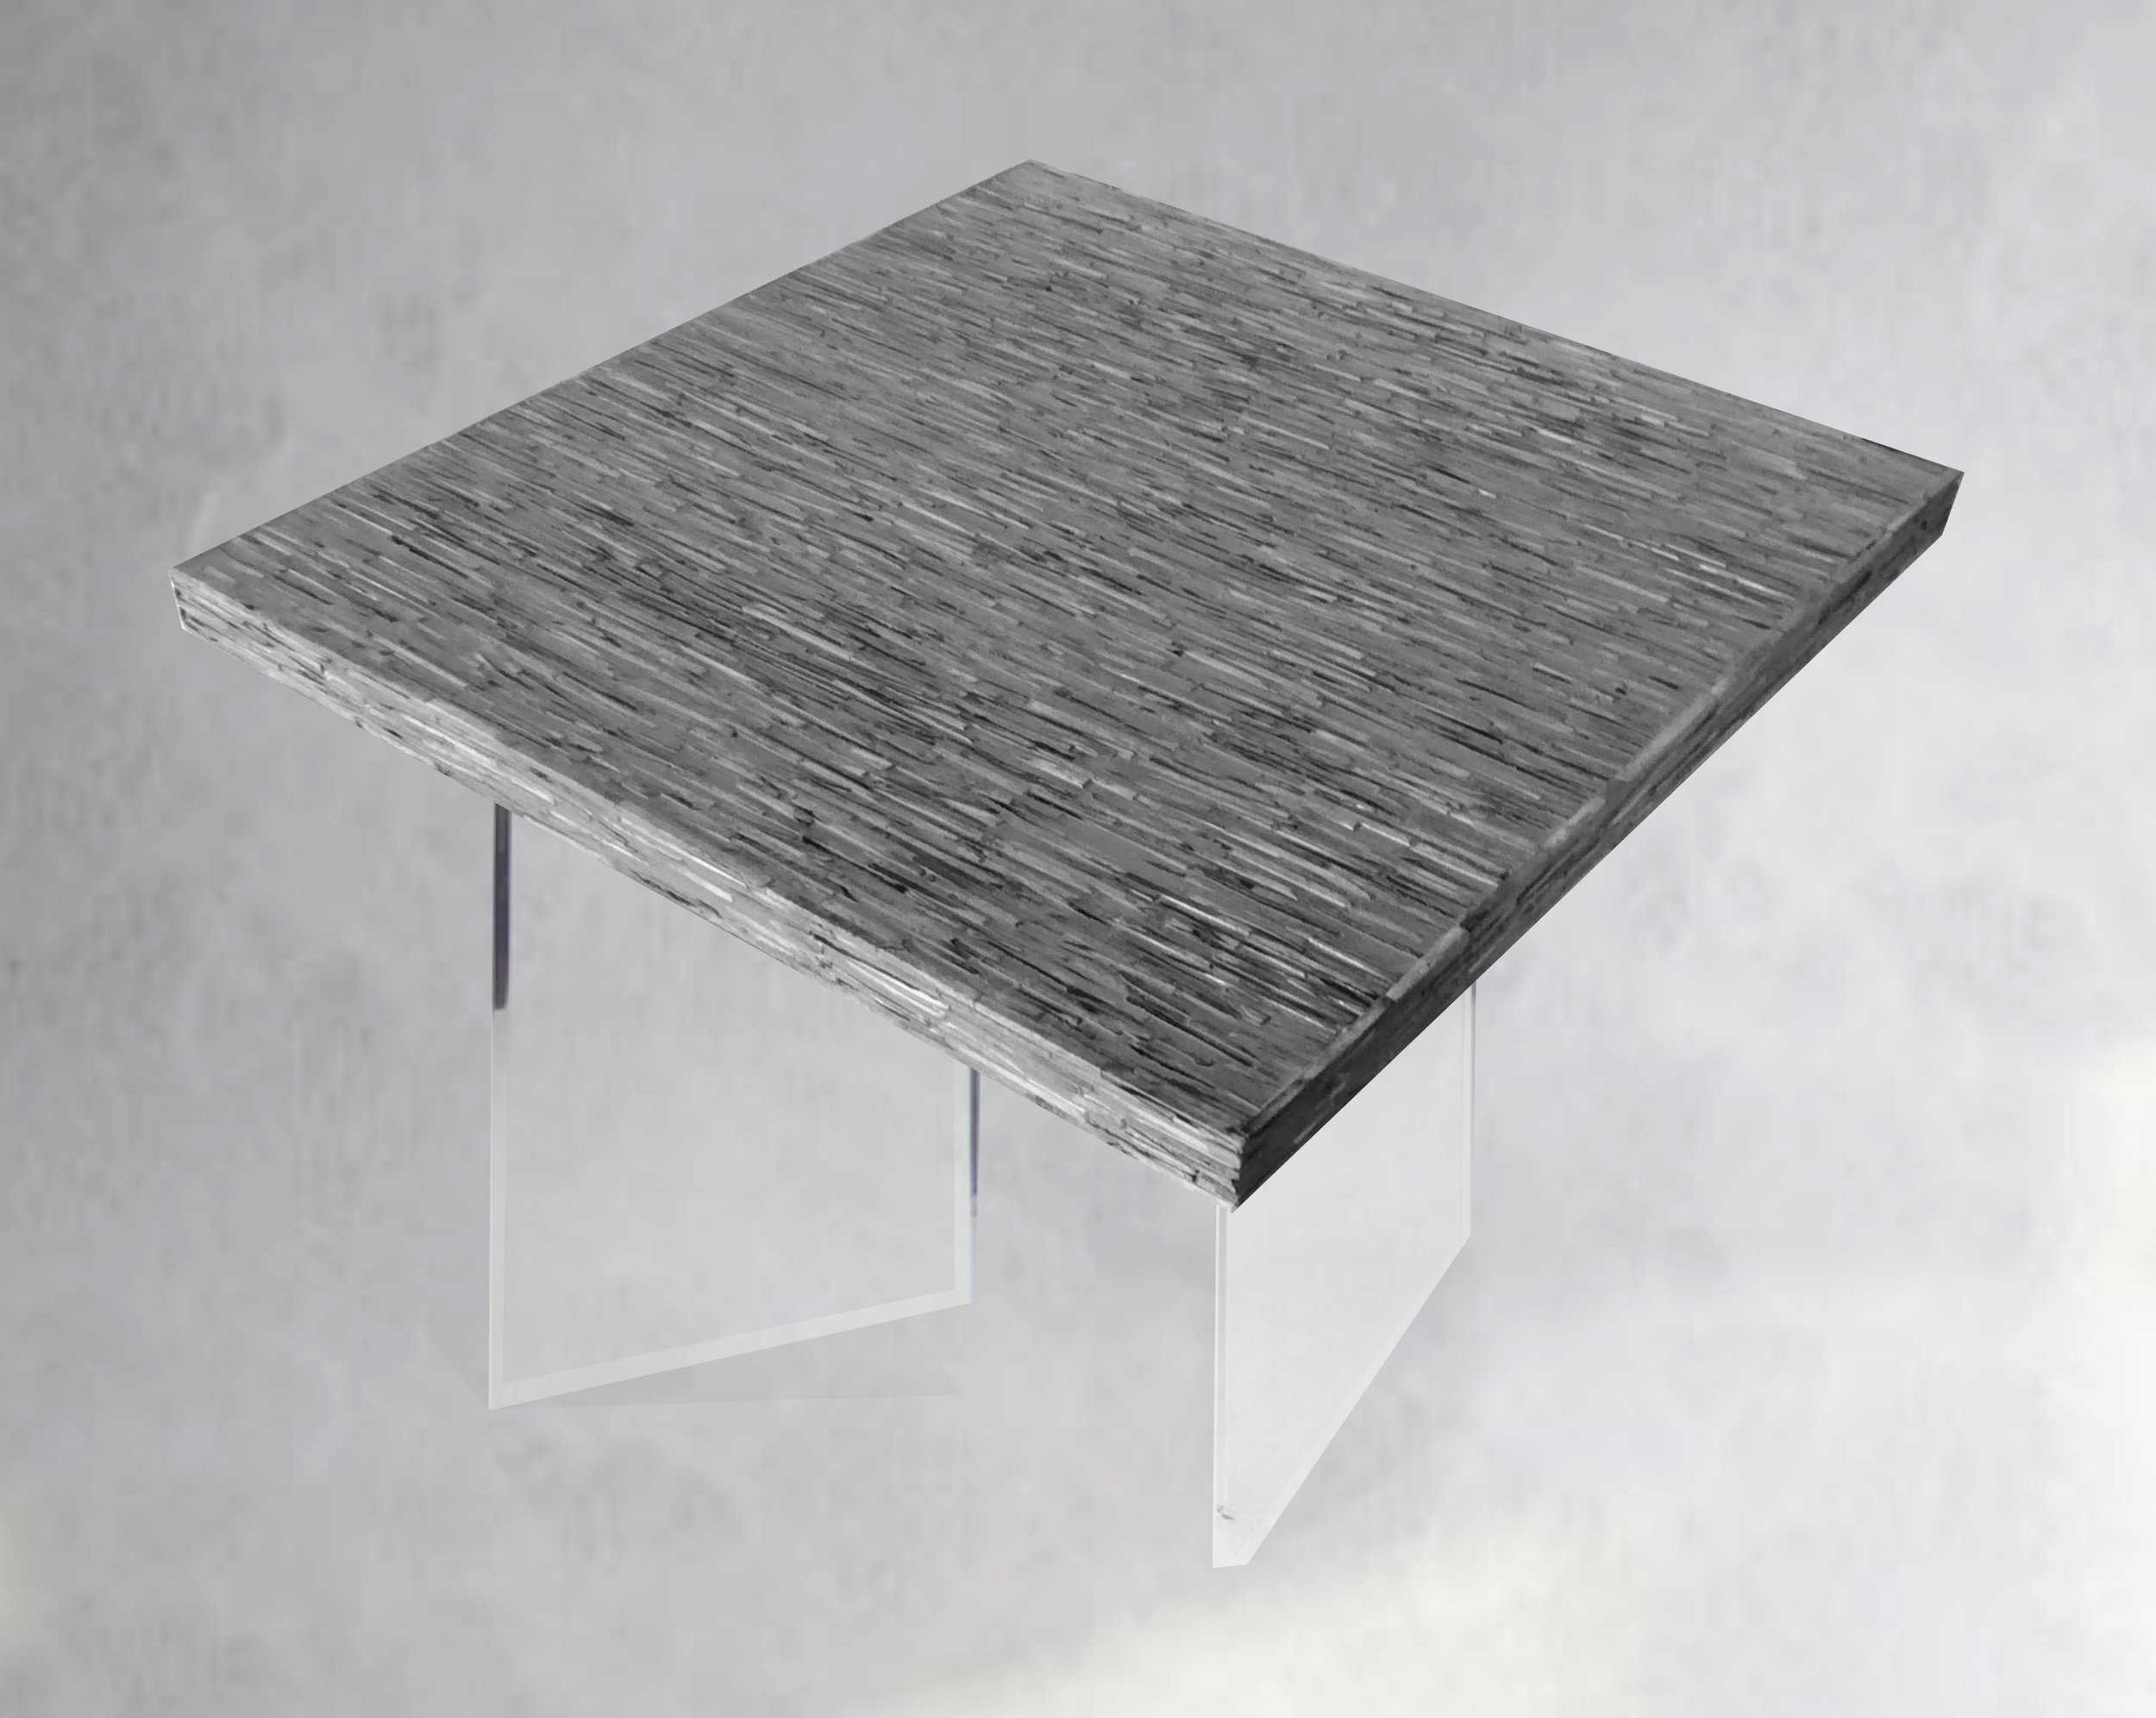 Fossil end table gray.jpg